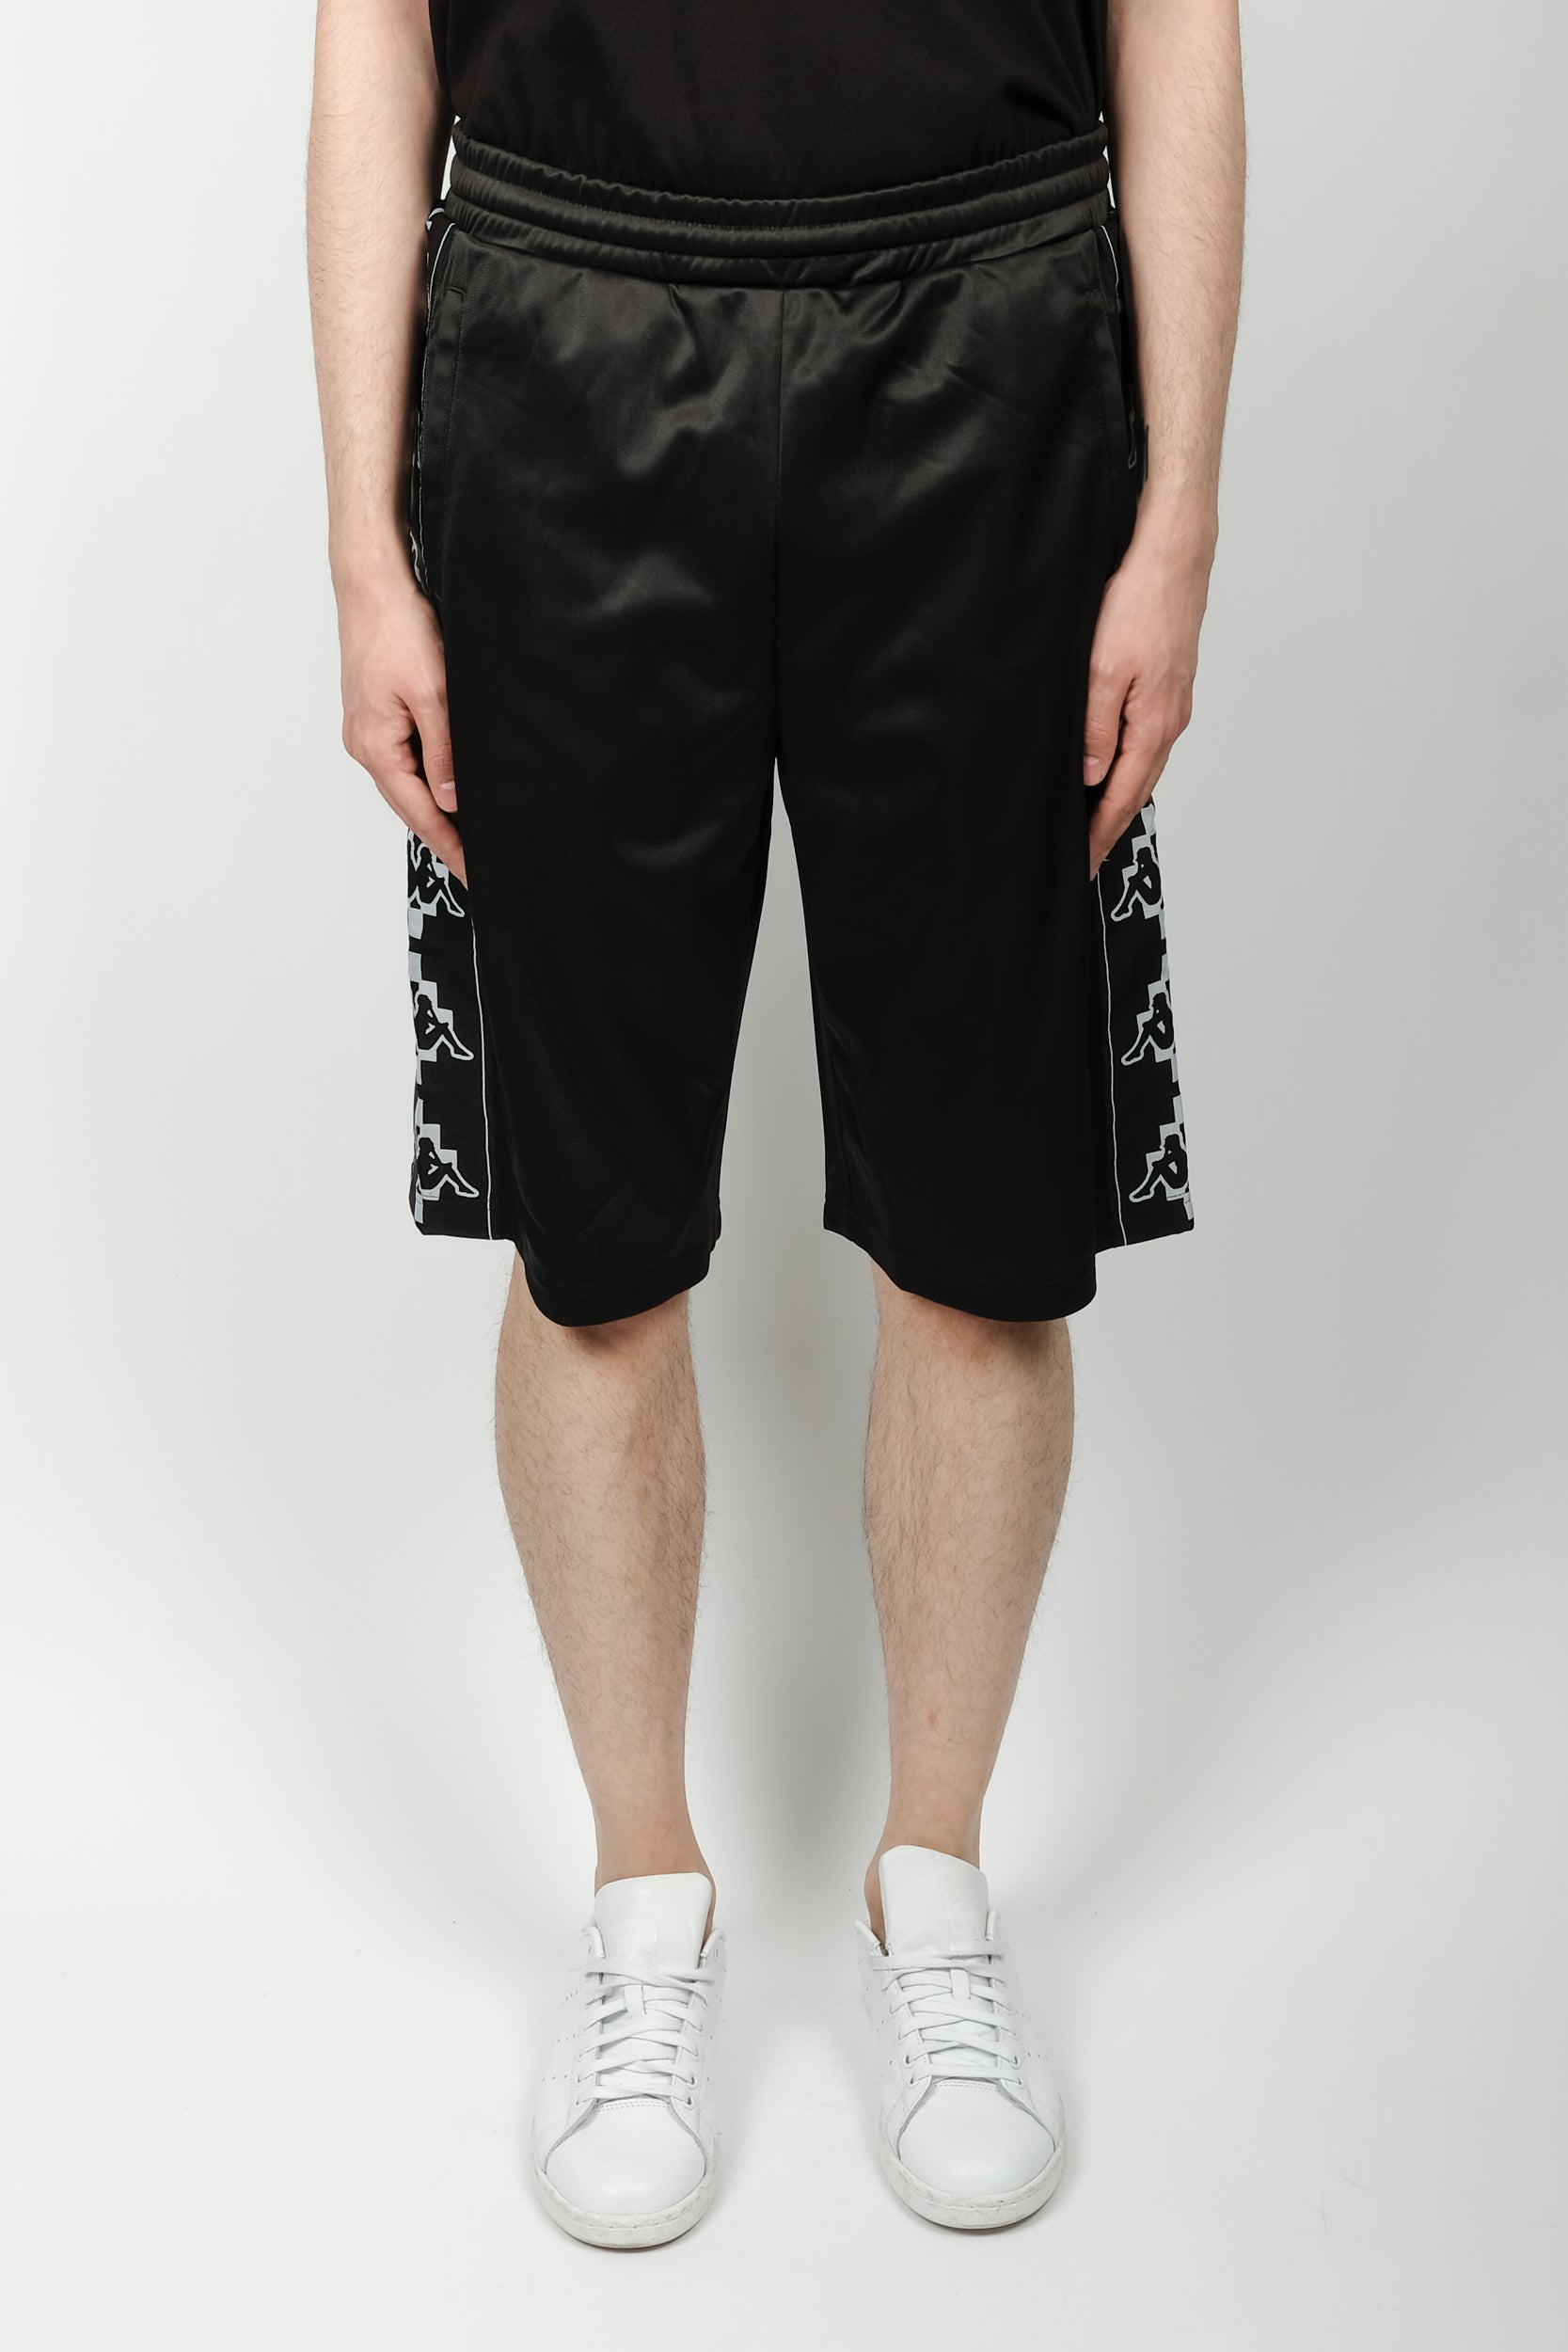 Kappa shorts - Black Marcelo Burlon Clearance Visit New 9EOEYoyX